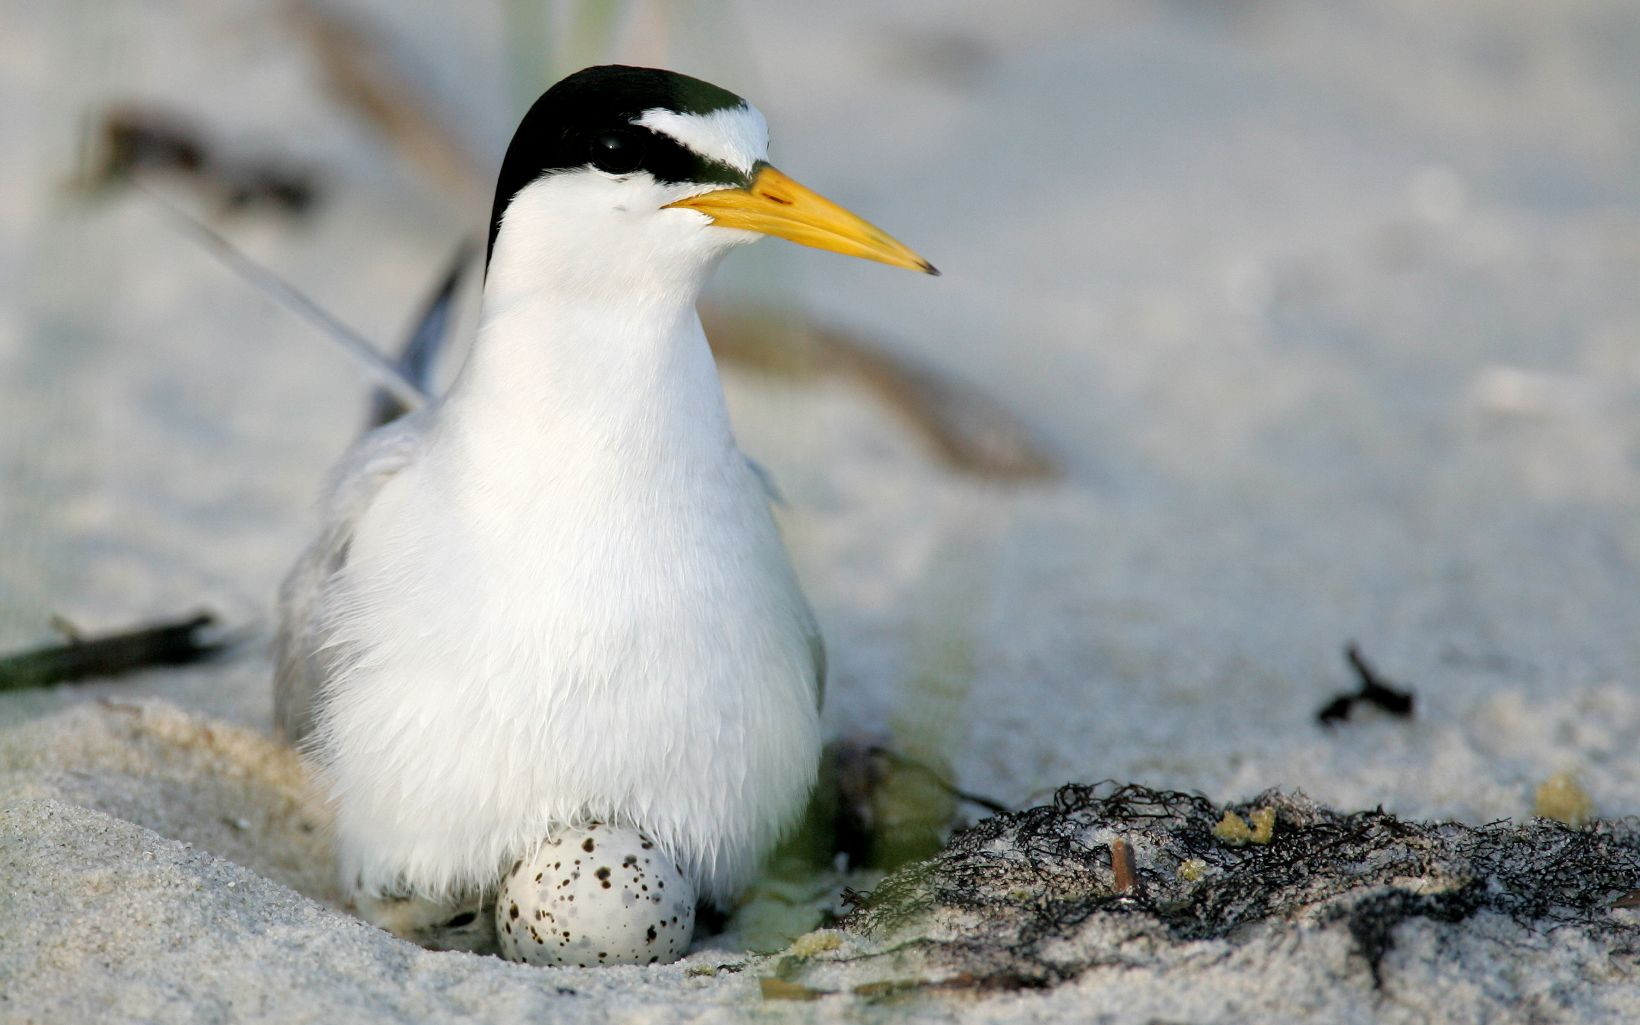 The smallest of American terns, the Least Tern is found nesting on sandy beaches along the southern coasts of the United States.